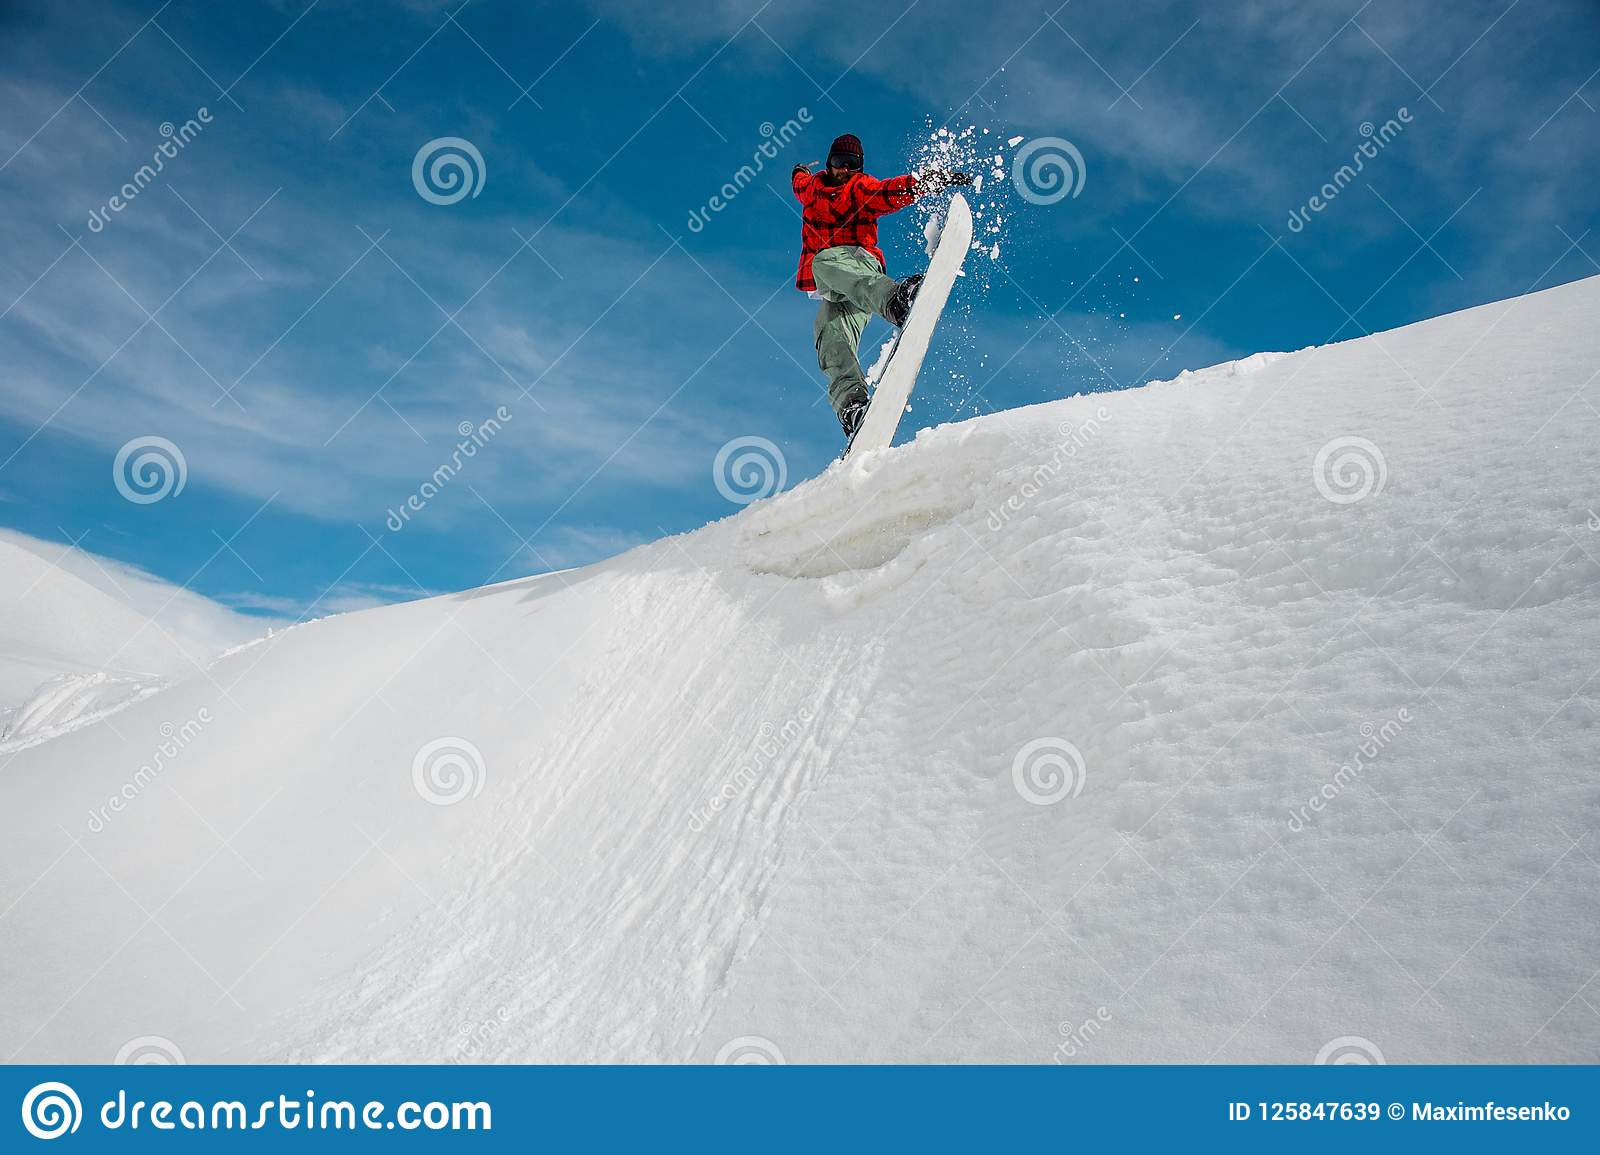 7953b8e9b588 Man in warm ski gear is jumping on a blue snowboard from a snowy mountain  against a blue sky and snow-capped mountain peaks